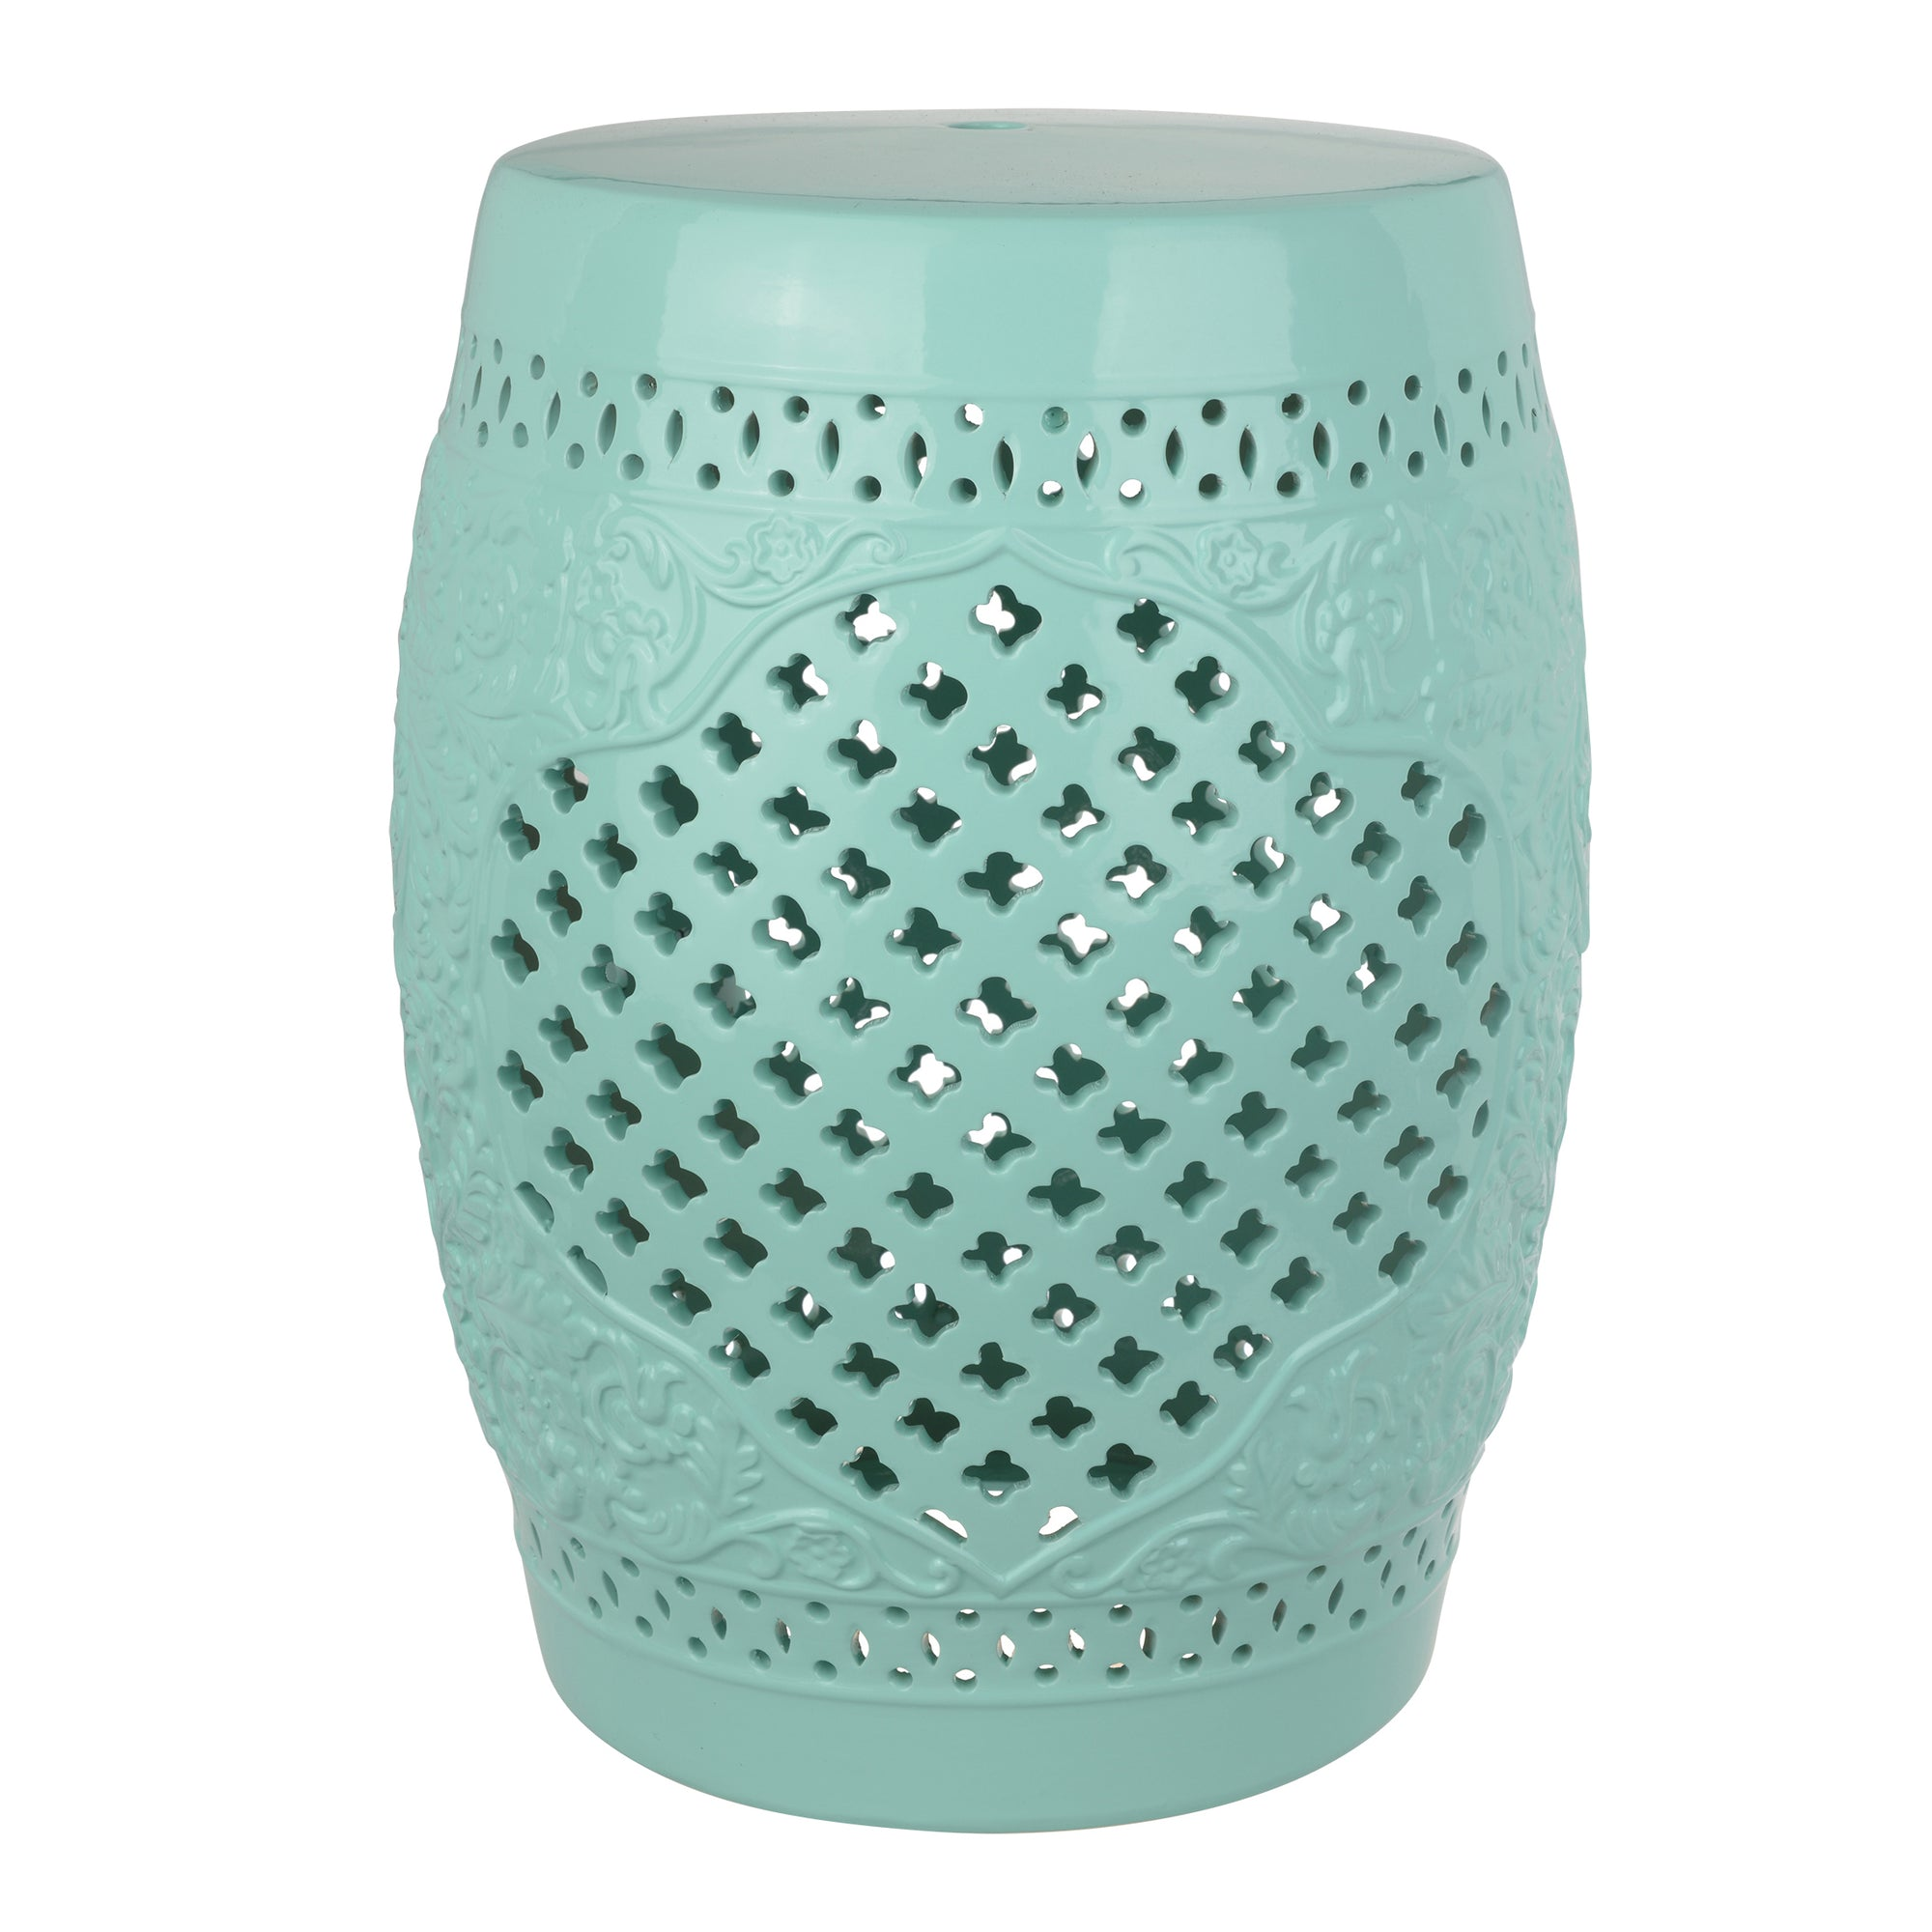 AB-0694 Ula Indoor/Outdoor Stool